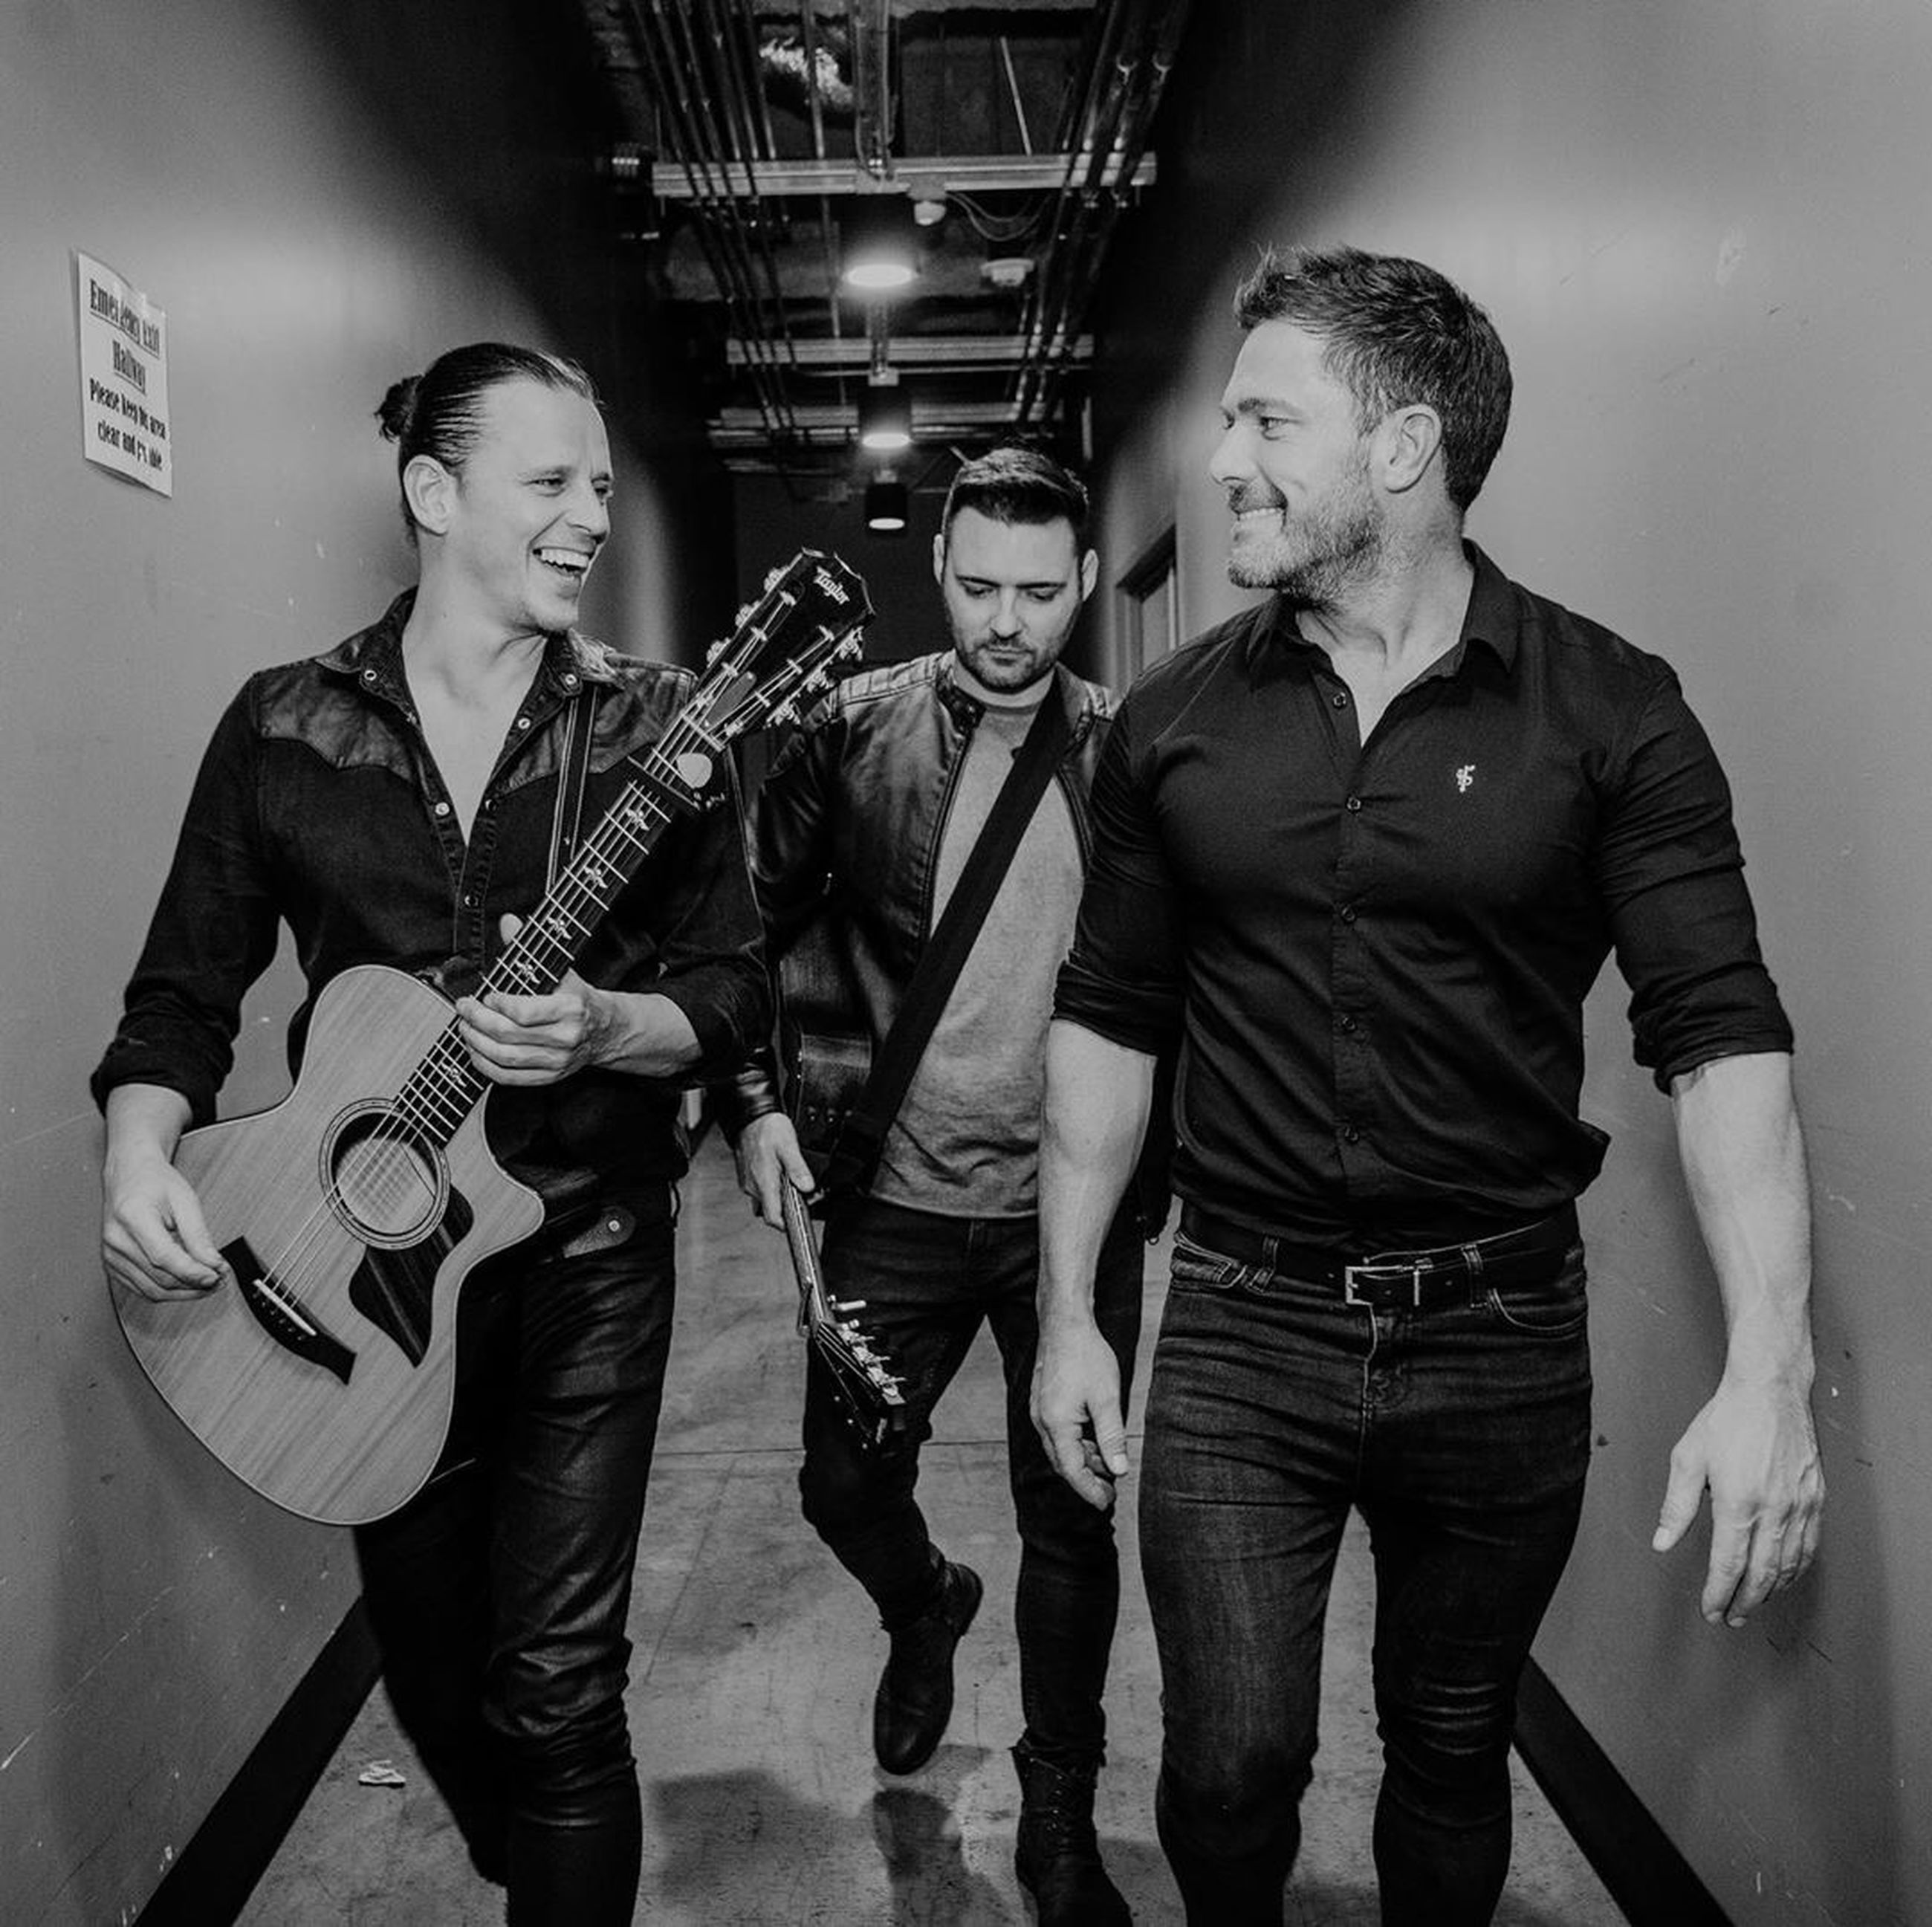 musical instrument, guitar, arts culture and entertainment, music, young men, string instrument, young adult, musician, musical equipment, performance, indoors, real people, three people, togetherness, men, playing, front view, artist, standing, electric guitar